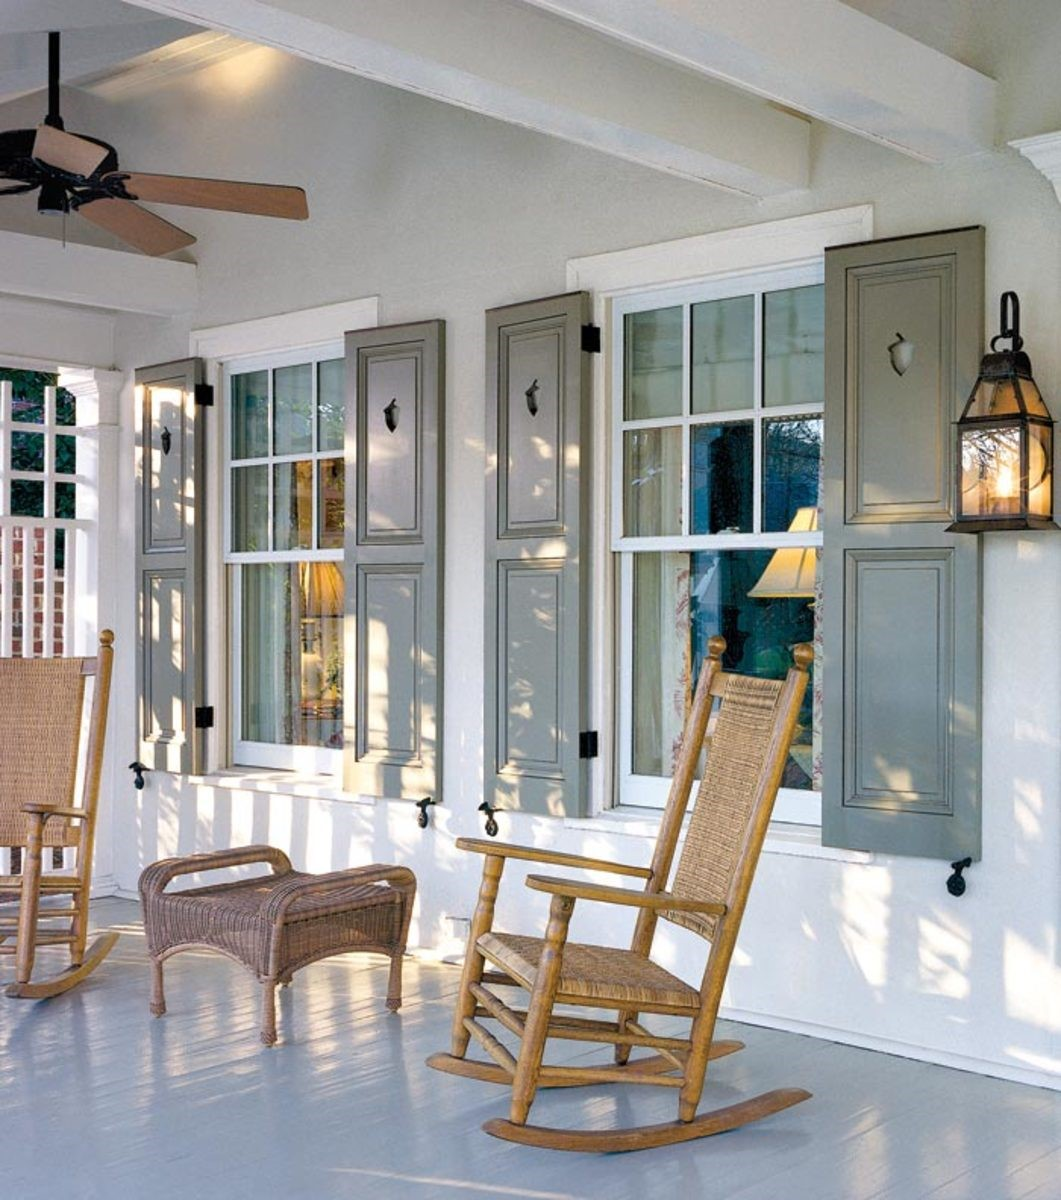 Porch with natural wood rocking chairs and sage-color window shutters